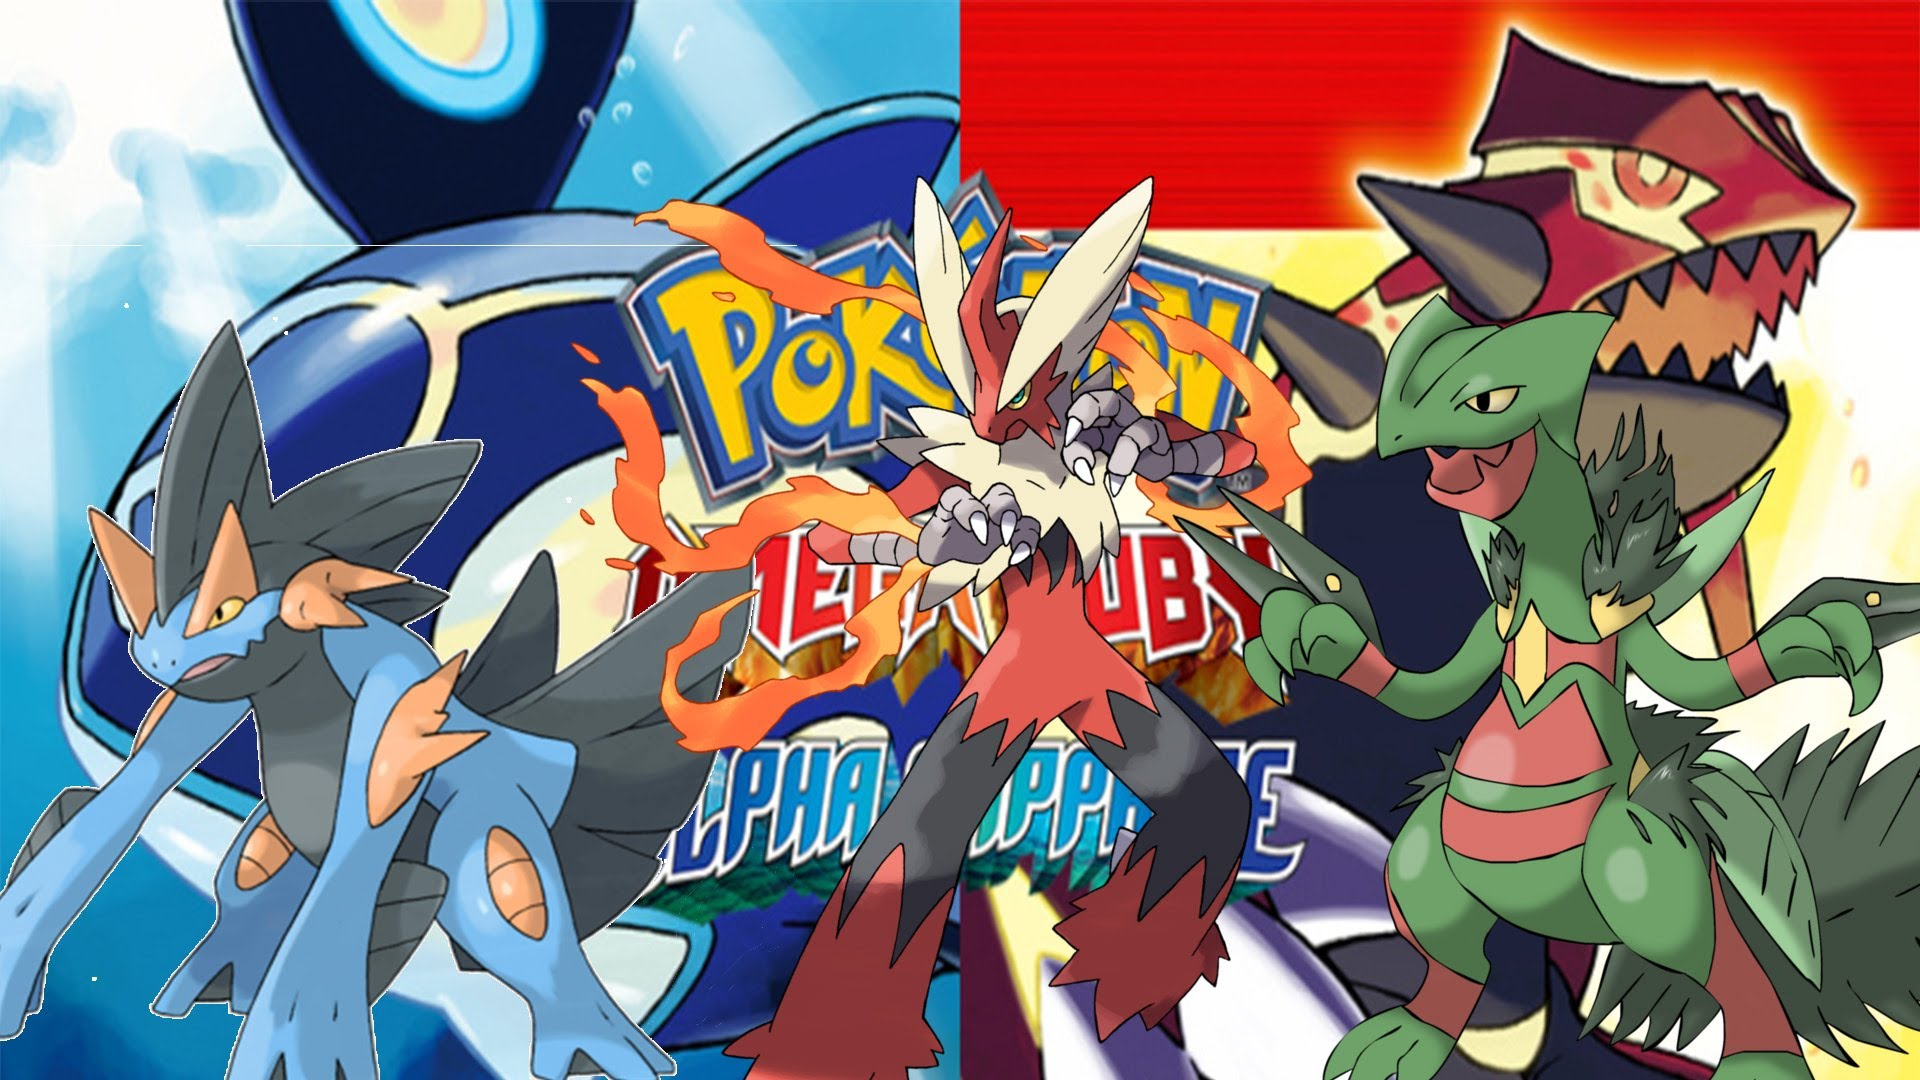 Pokémon: Omega Ruby and Alpha Sapphire HD Wallpaper | Background Image | 1920x1080 | ID:549809 - Wallpaper Abyss